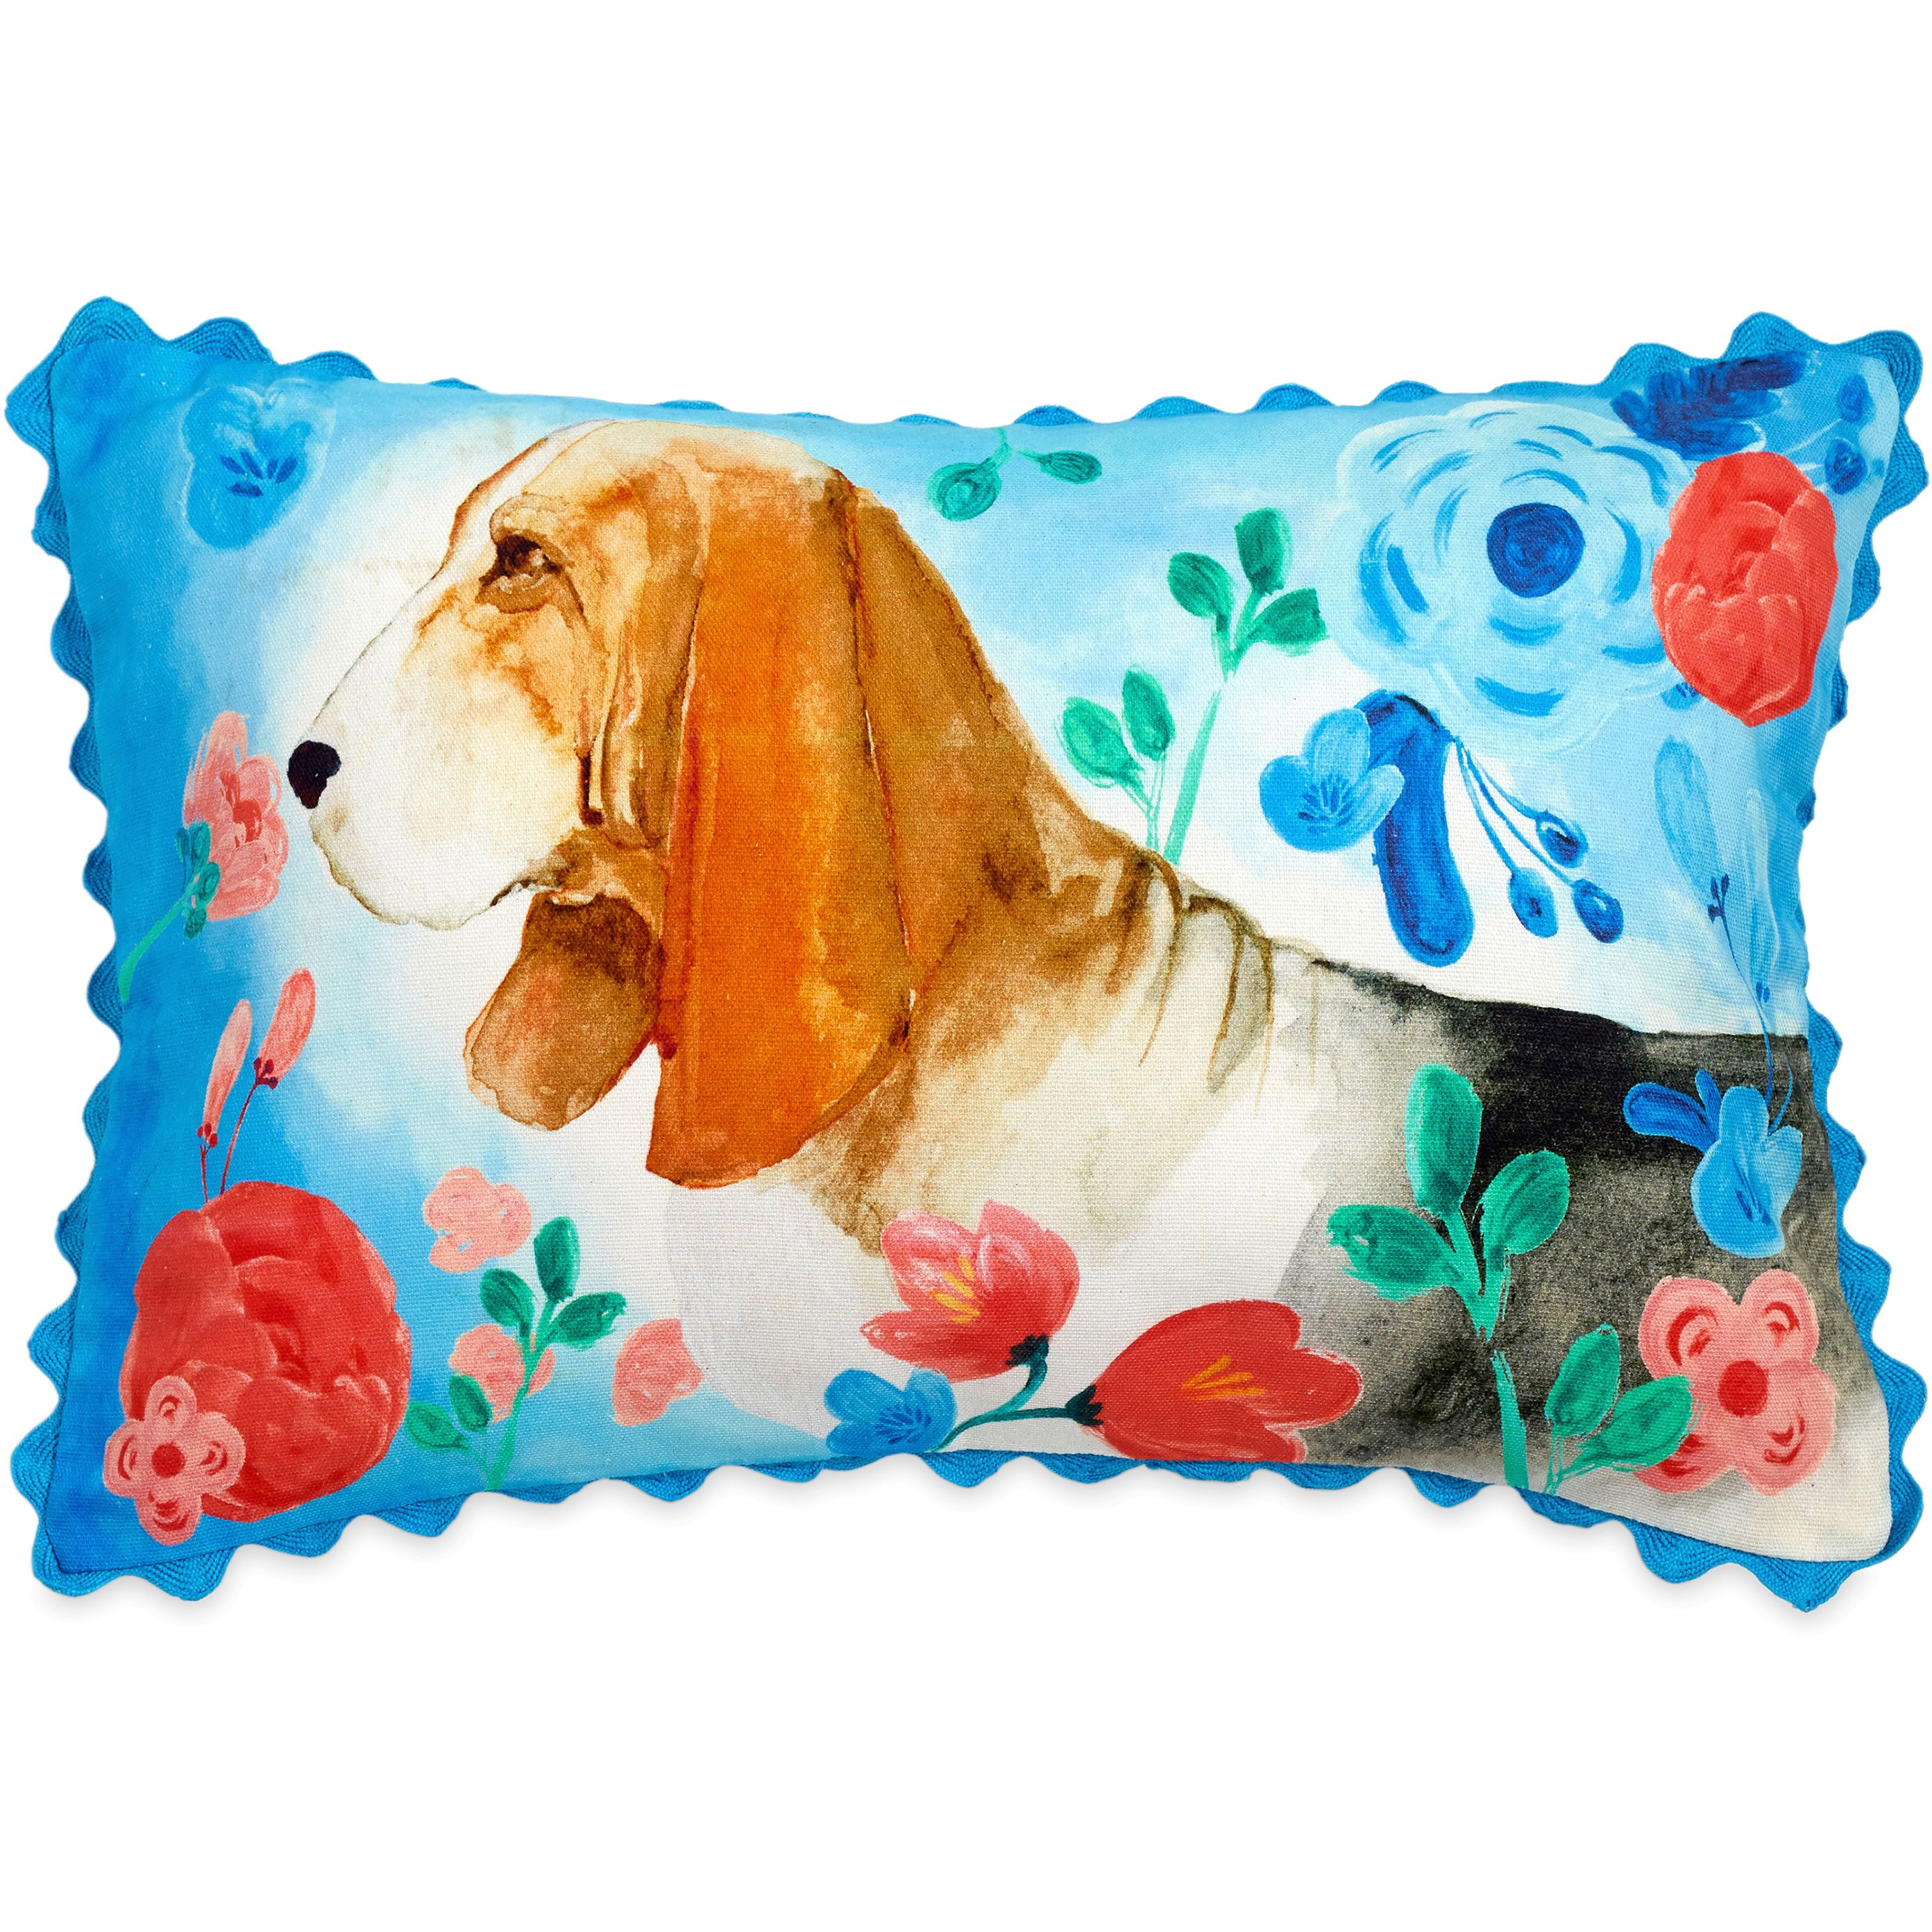 The Pioneer Woman Charlie Dog 12x18 Decorative Pillow by CHF Industries, Inc.